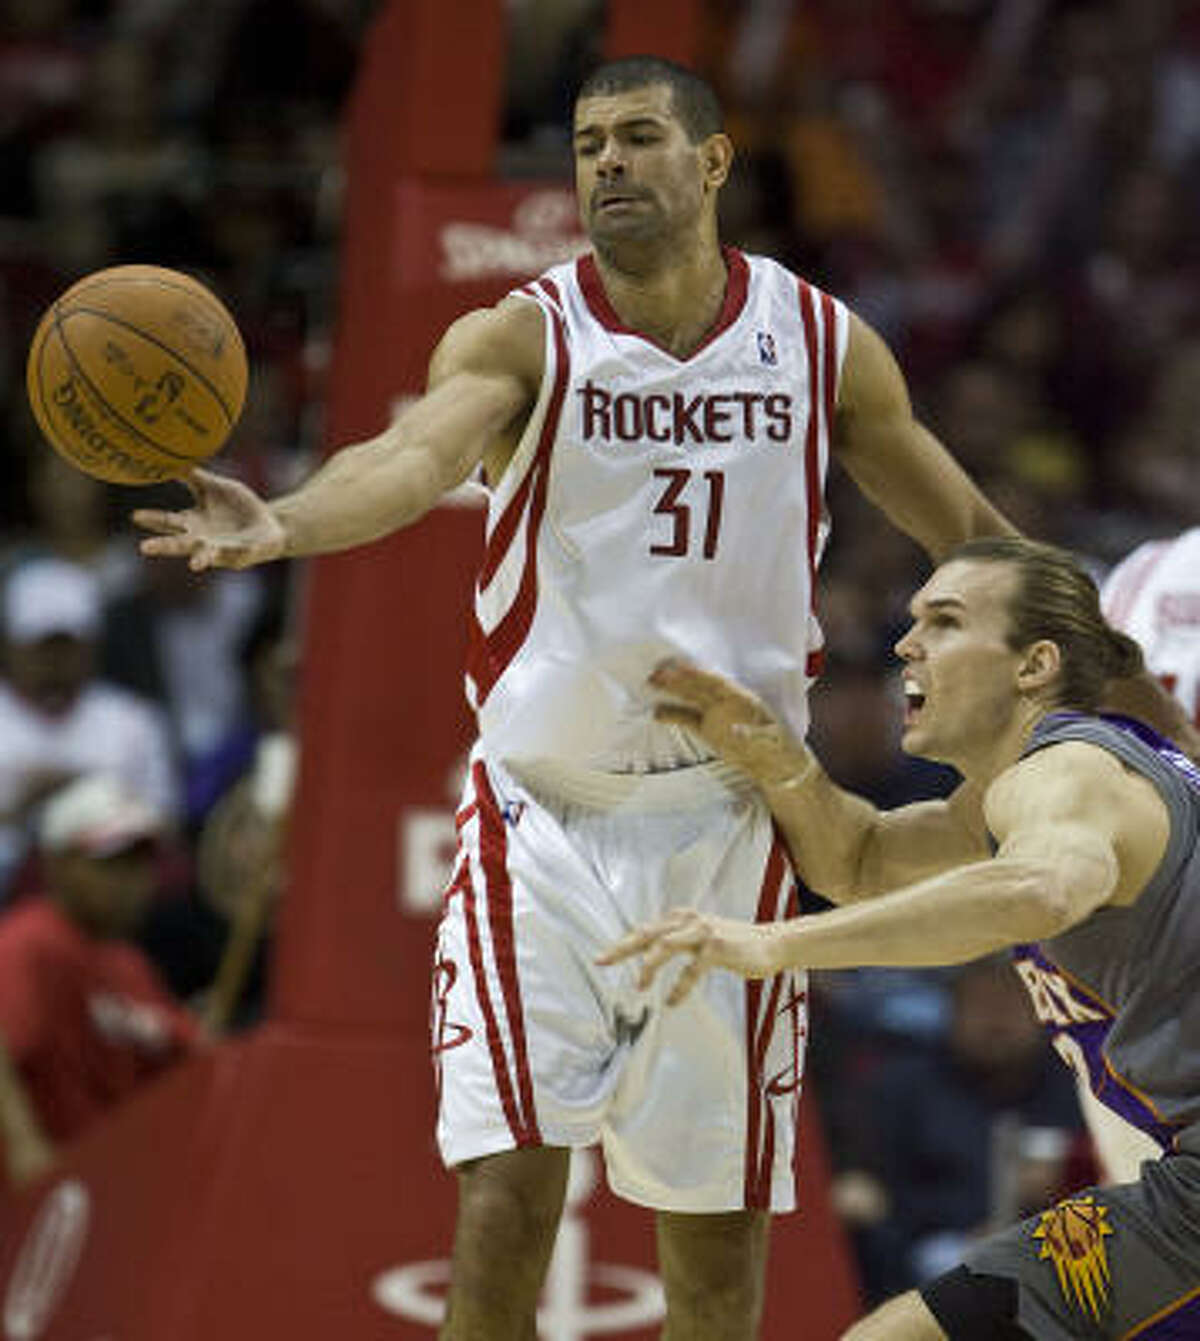 Rockets guard Shane Battier and Suns center Louis Amundson (right) chase a loose ball during the fourth quarter.